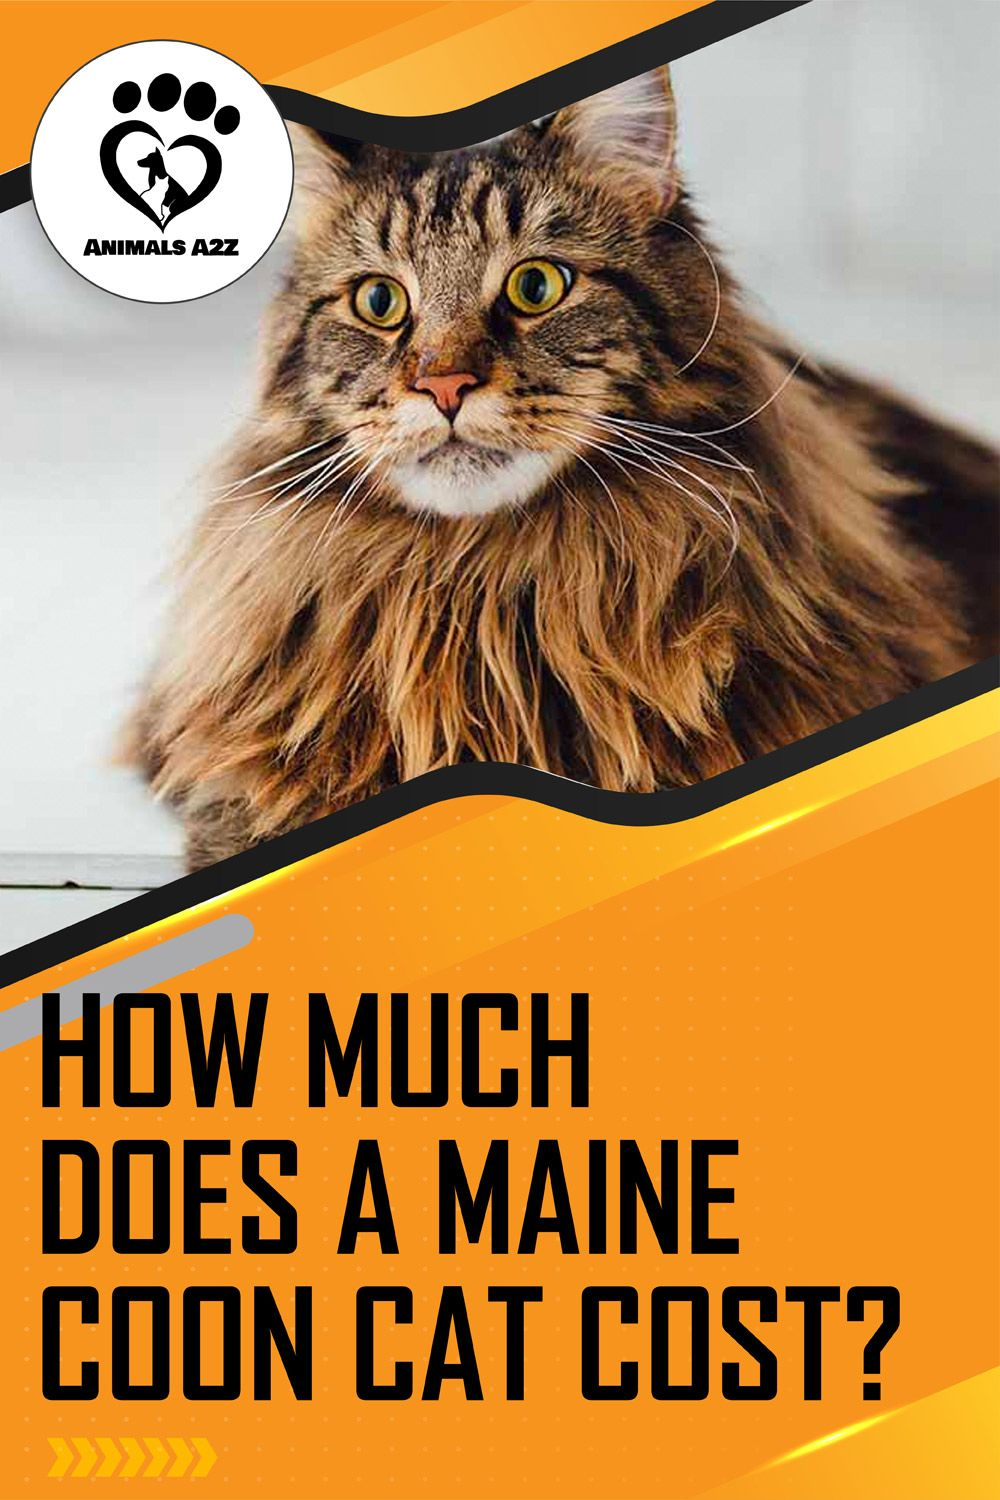 A Maine Coon cat costs anywhere around 400 to 1500. It